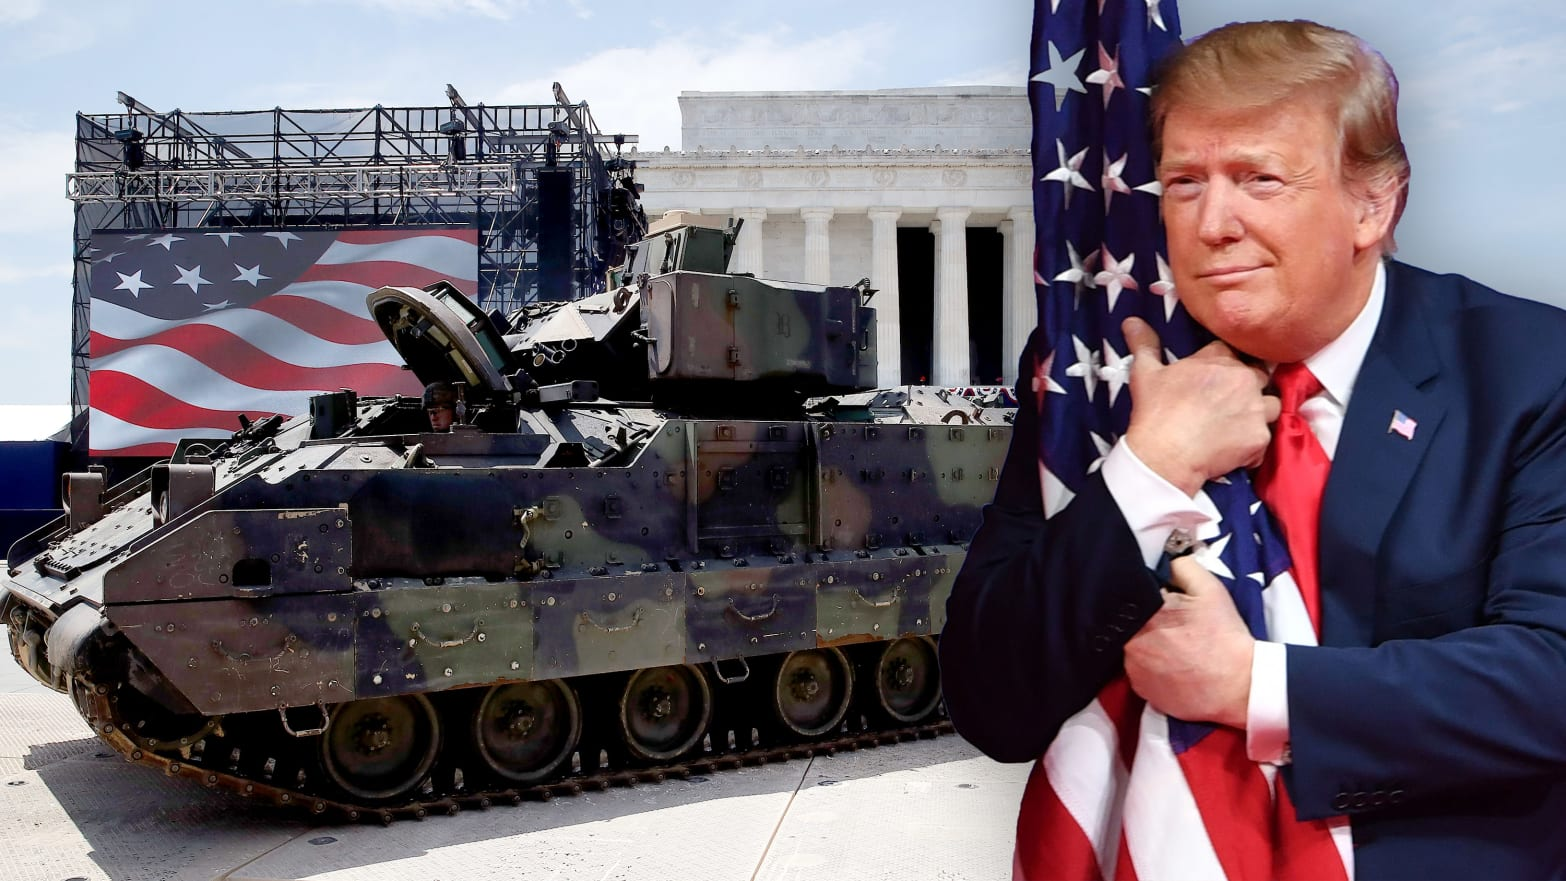 donald trump 4th of july 2020 parade